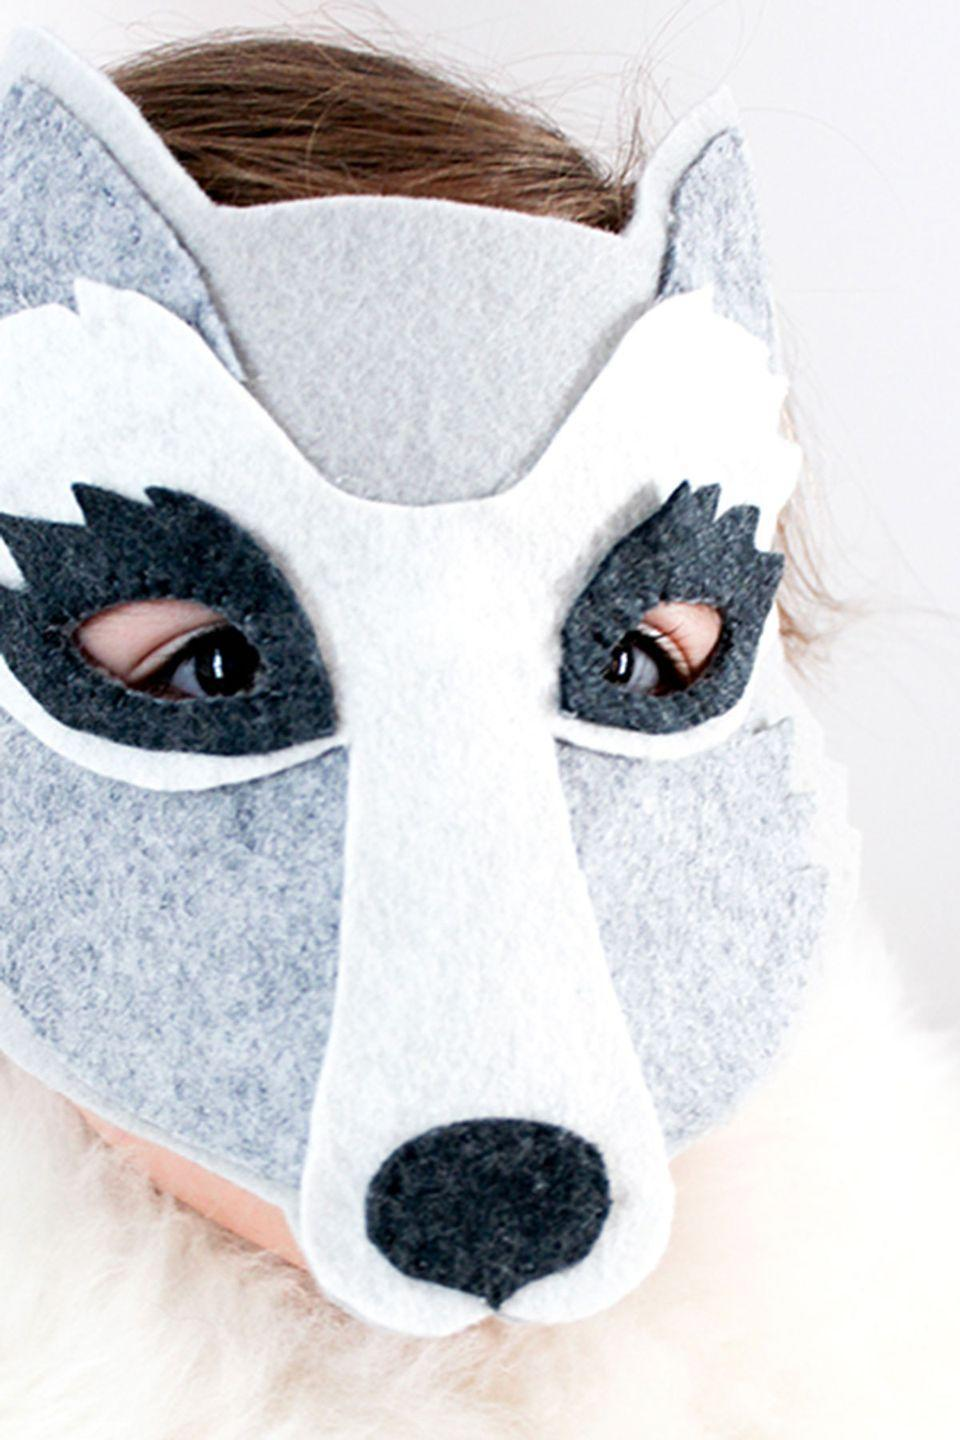 "<p>There's nothing scary about this adorable wolf mask. </p><p><strong>Get the tutorial at <a href=""http://ohmyhandmade.com/2013/hands/let-them-howl-diy-wolf-mask-tutorial/"" rel=""nofollow noopener"" target=""_blank"" data-ylk=""slk:Oh My Handmade"" class=""link rapid-noclick-resp"">Oh My Handmade</a>. </strong></p><p><a class=""link rapid-noclick-resp"" href=""https://www.amazon.com/Acrylic-Sheets-Fabric-Children-Classes/dp/B076NJM2CM/?tag=syn-yahoo-20&ascsubtag=%5Bartid%7C10050.g.3480%5Bsrc%7Cyahoo-us"" rel=""nofollow noopener"" target=""_blank"" data-ylk=""slk:SHOP WHITE FELT""><strong>SHOP WHITE FELT</strong> </a></p>"